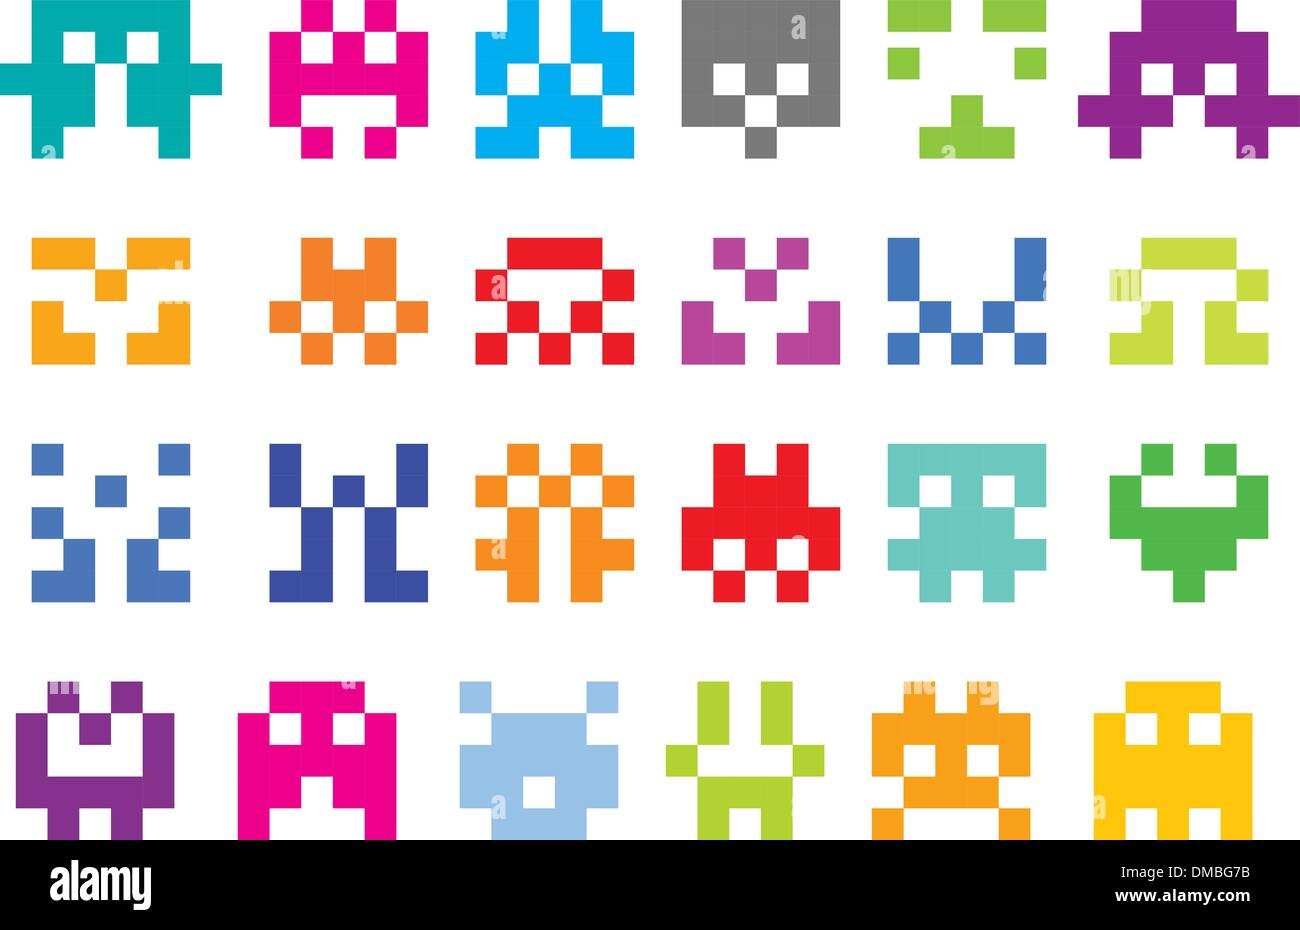 pixel icons - Stock Vector